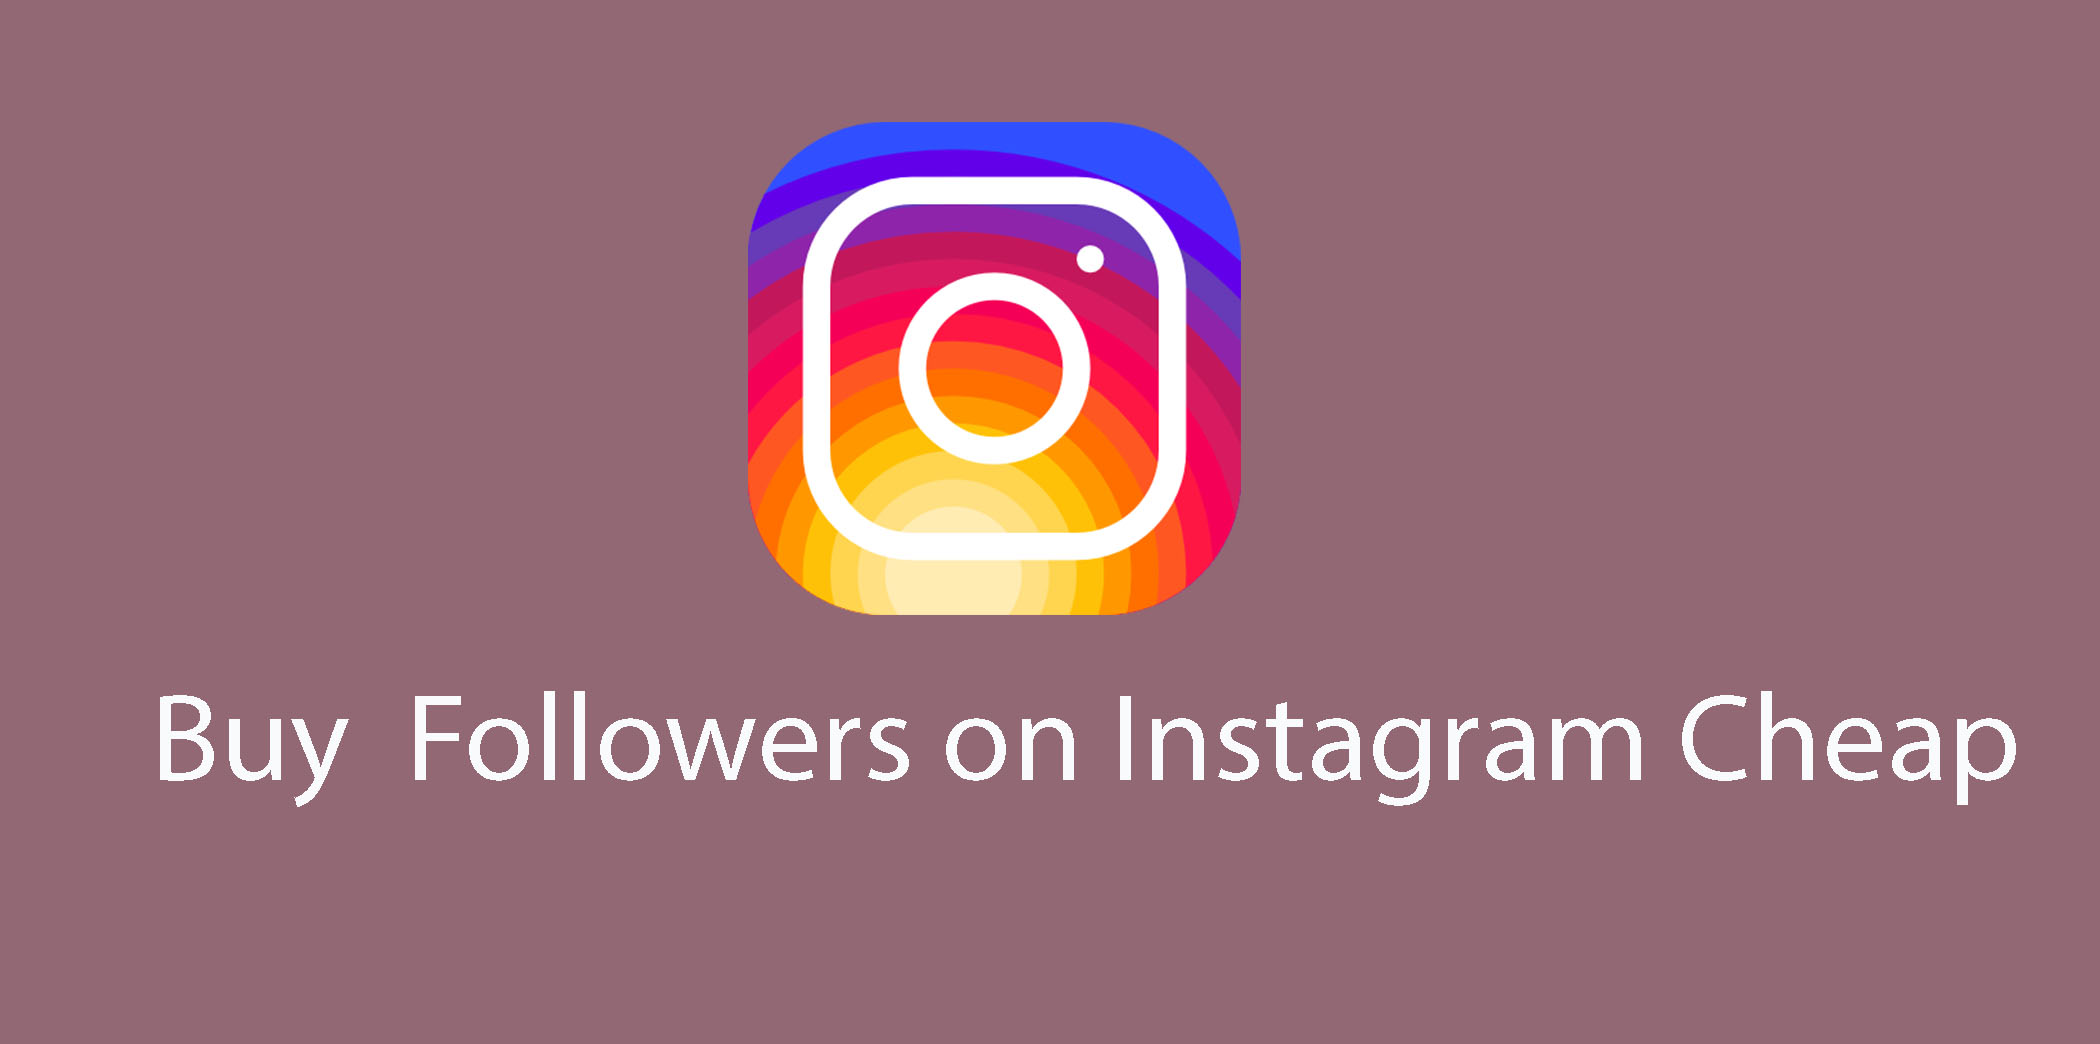 Buy Instagram Followers to Grow your Business - Techicy